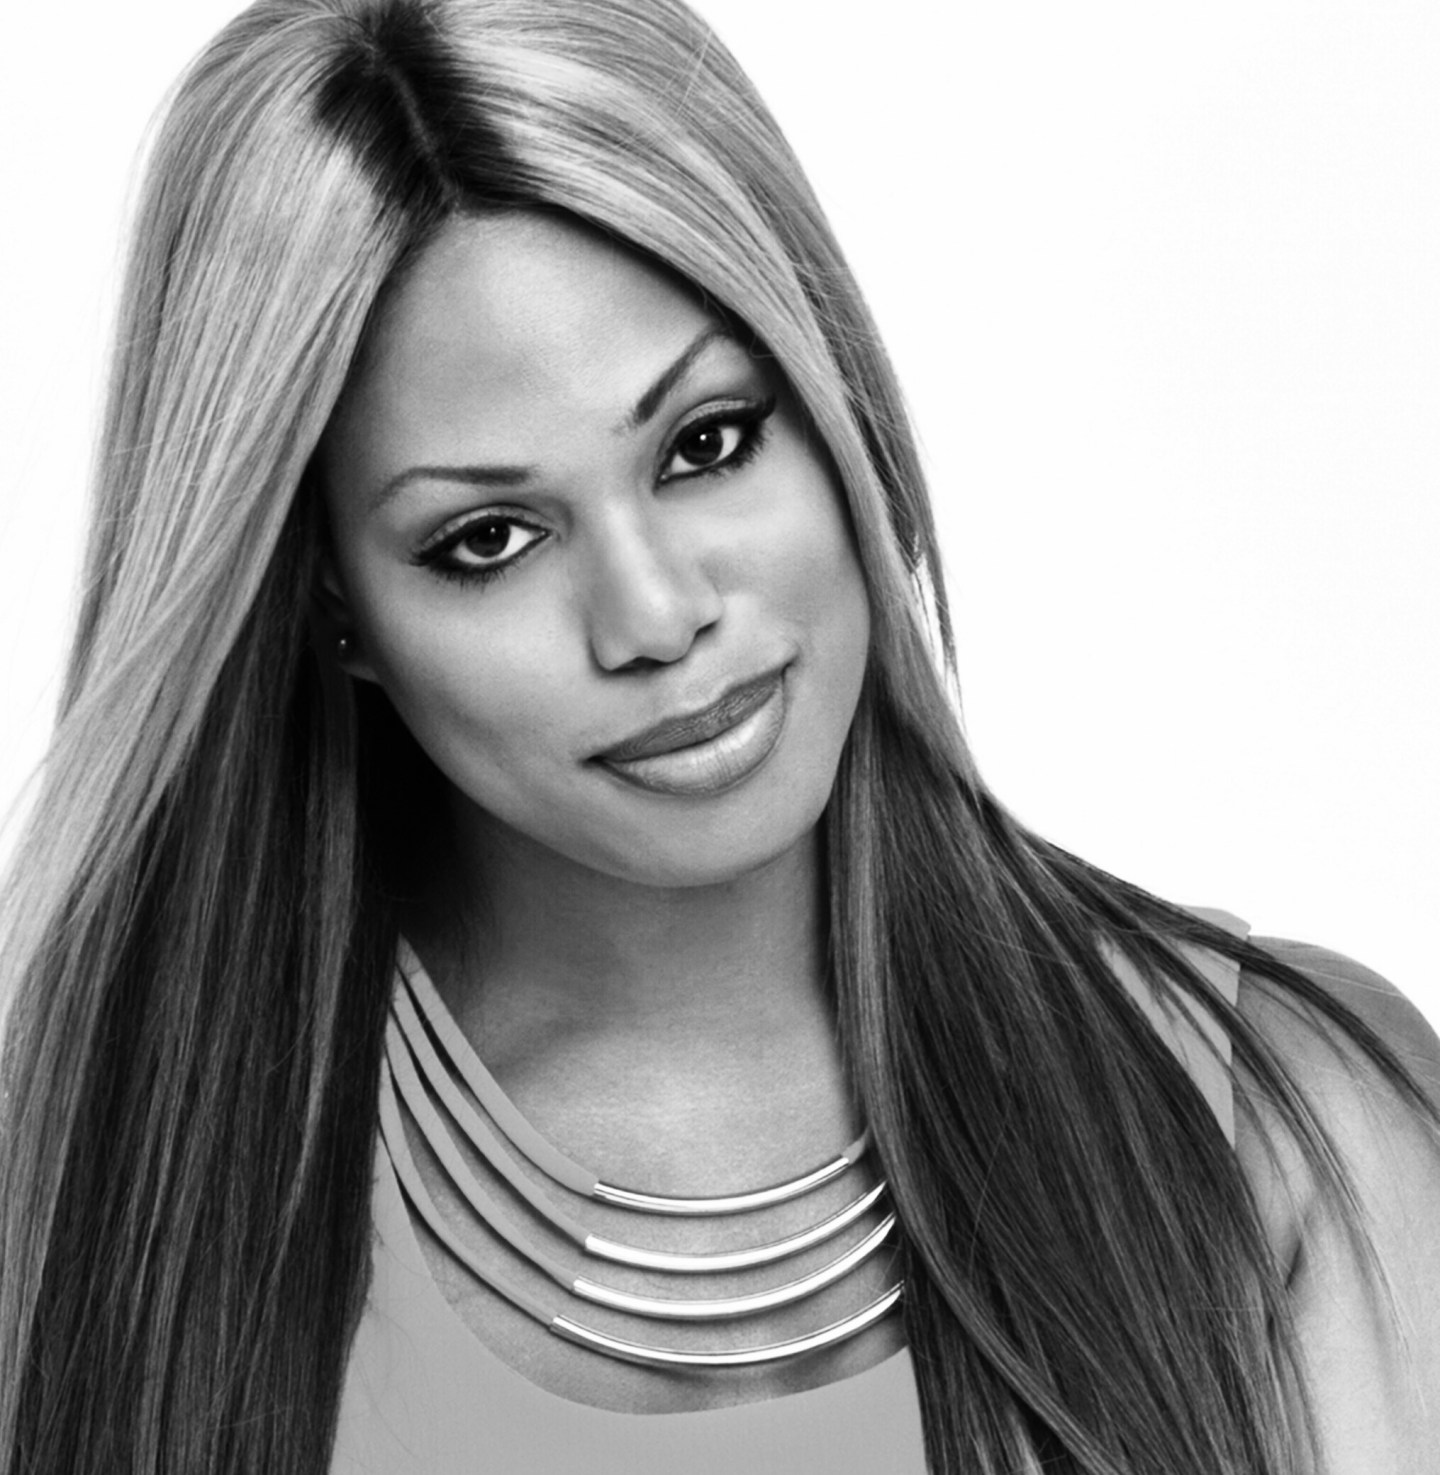 Laverne Cox Named One Of People Magazine's Most Beautiful People for 2015, Who Can Argue?